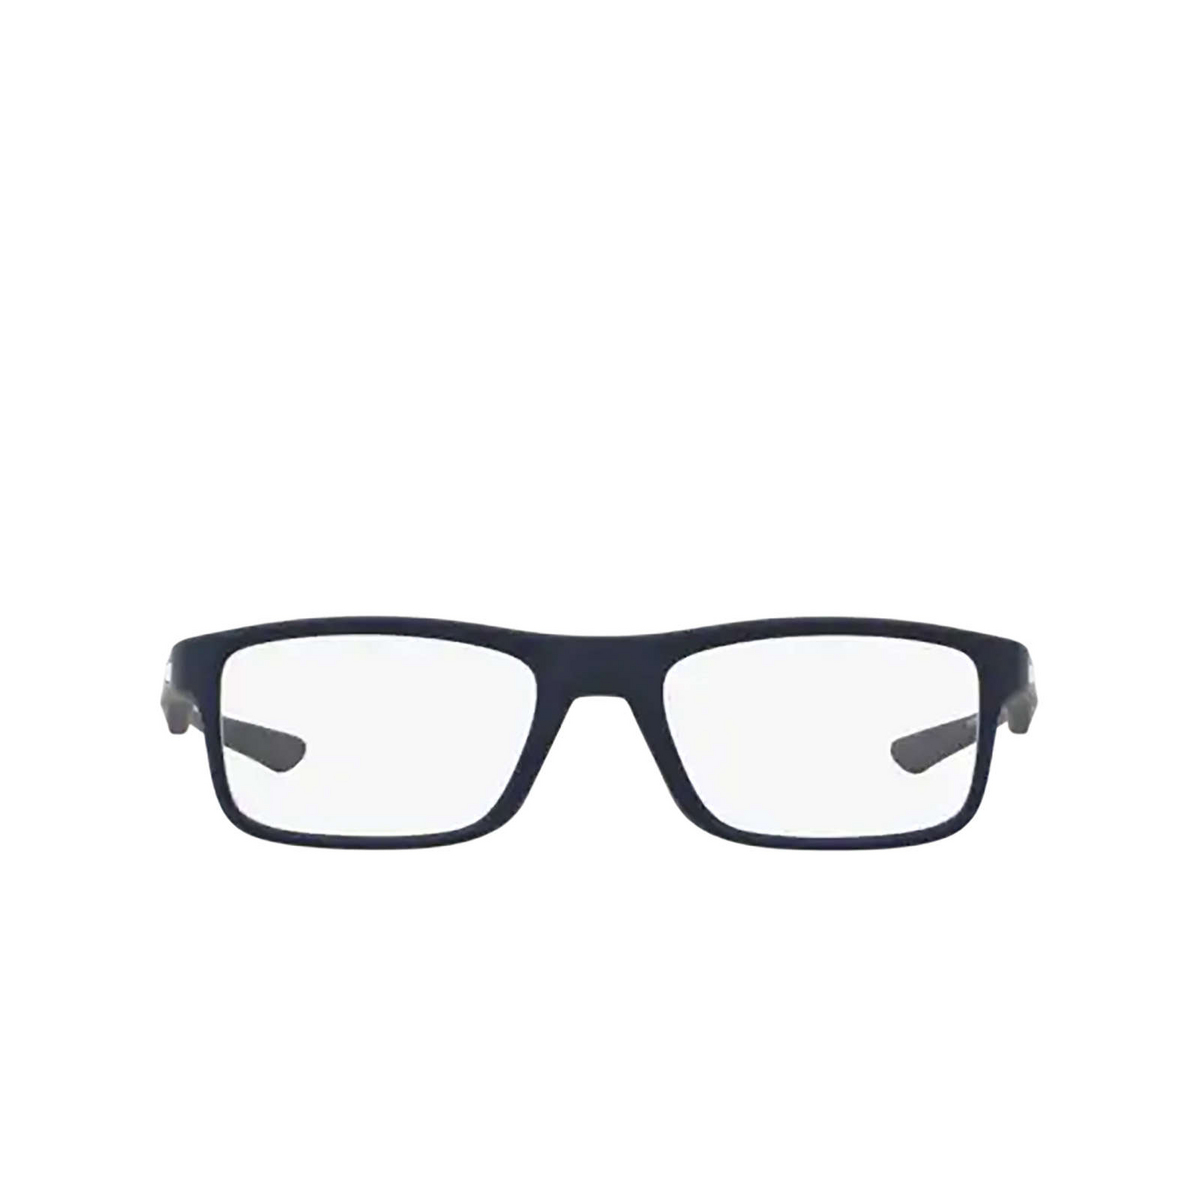 Oakley® Rectangle Eyeglasses: Plank 2.0 OX8081 color Softcoat Universal Blue 808103 - front view.